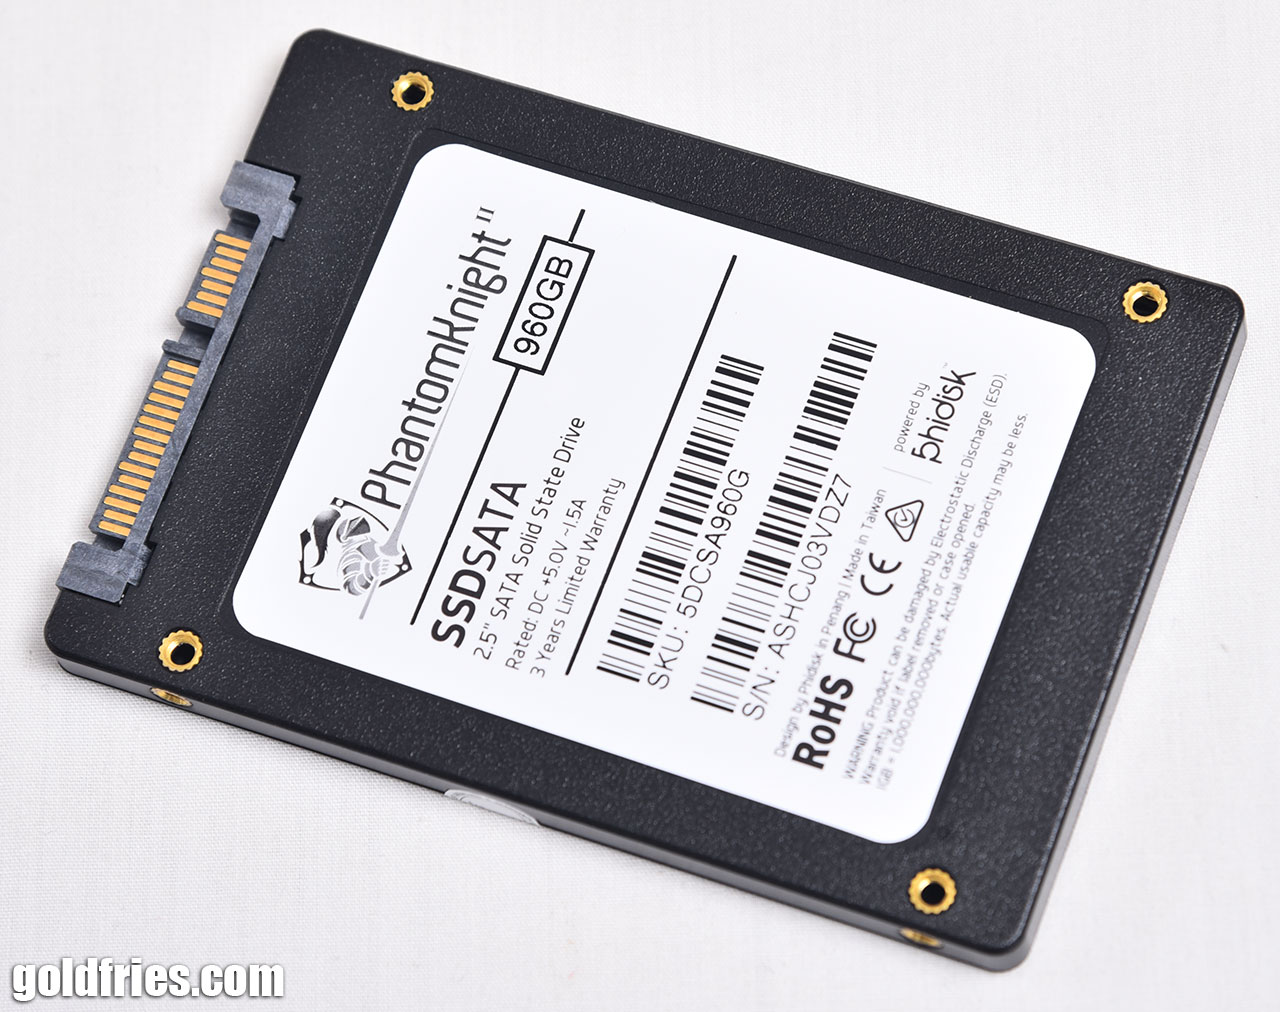 Phidisk PhantomKnight 960GB SSD Review